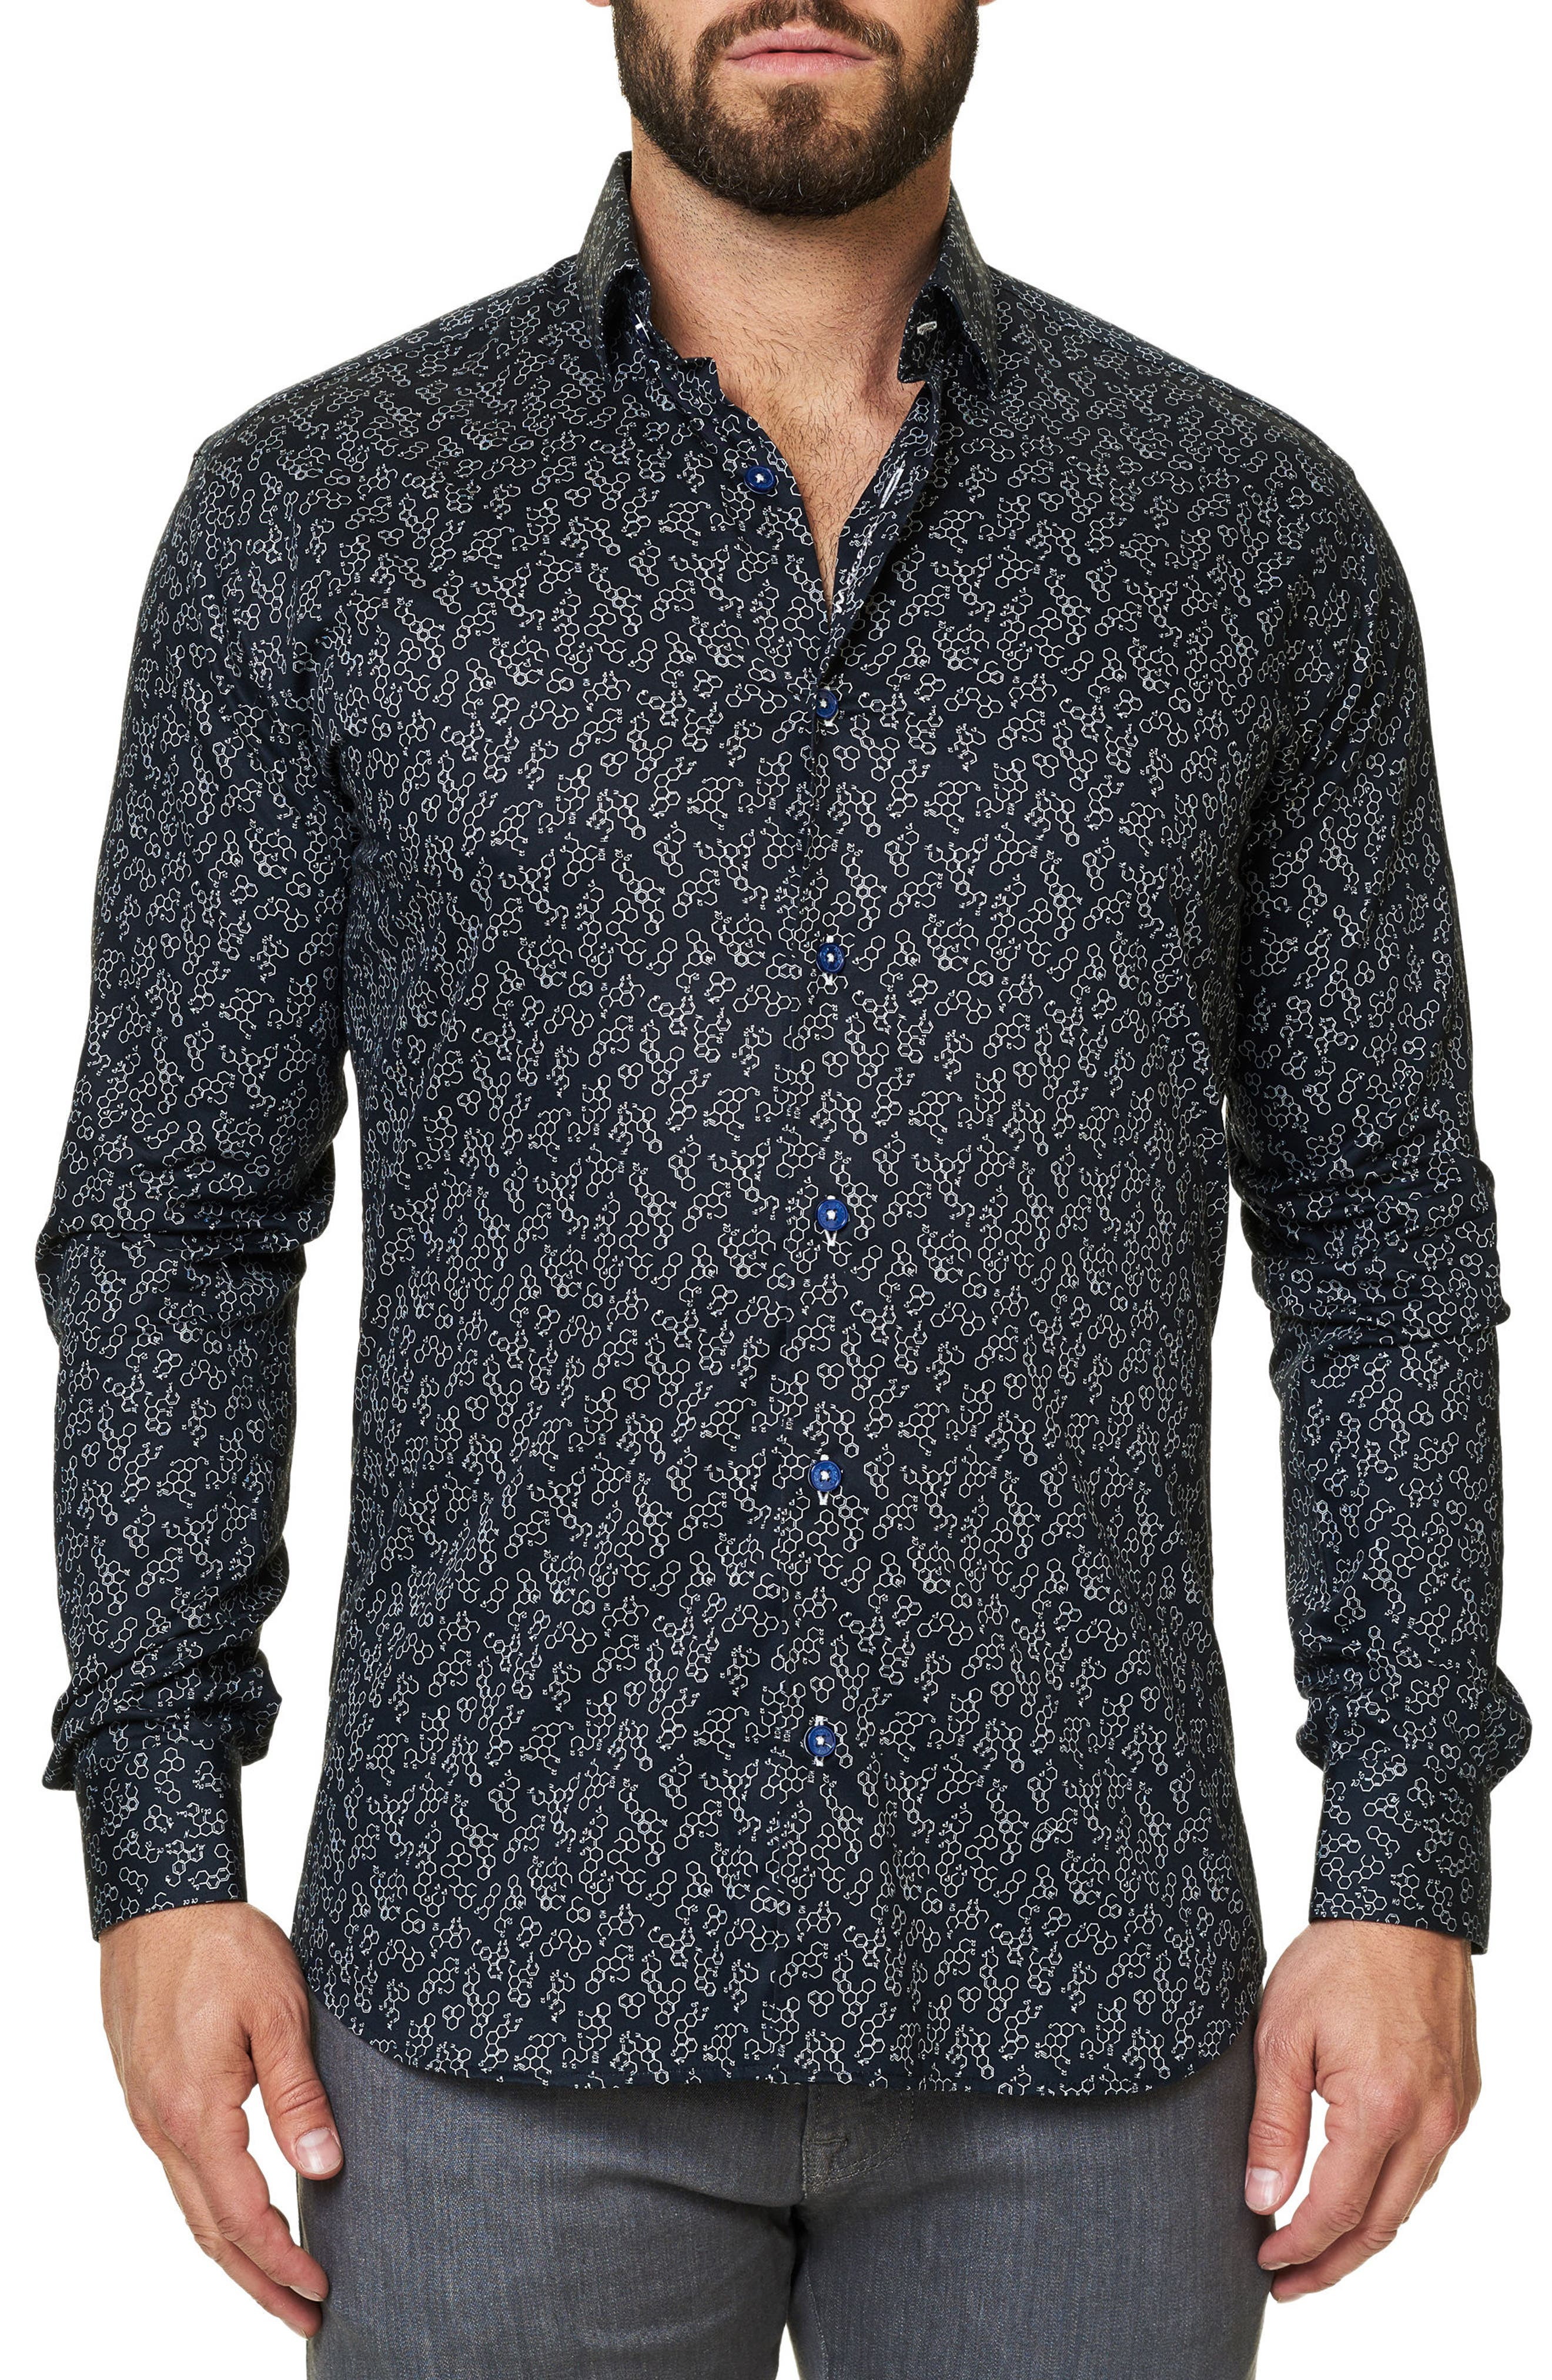 Main Image - Maceoo Luxor Funky Chemistry Trim Fit Sport Shirt